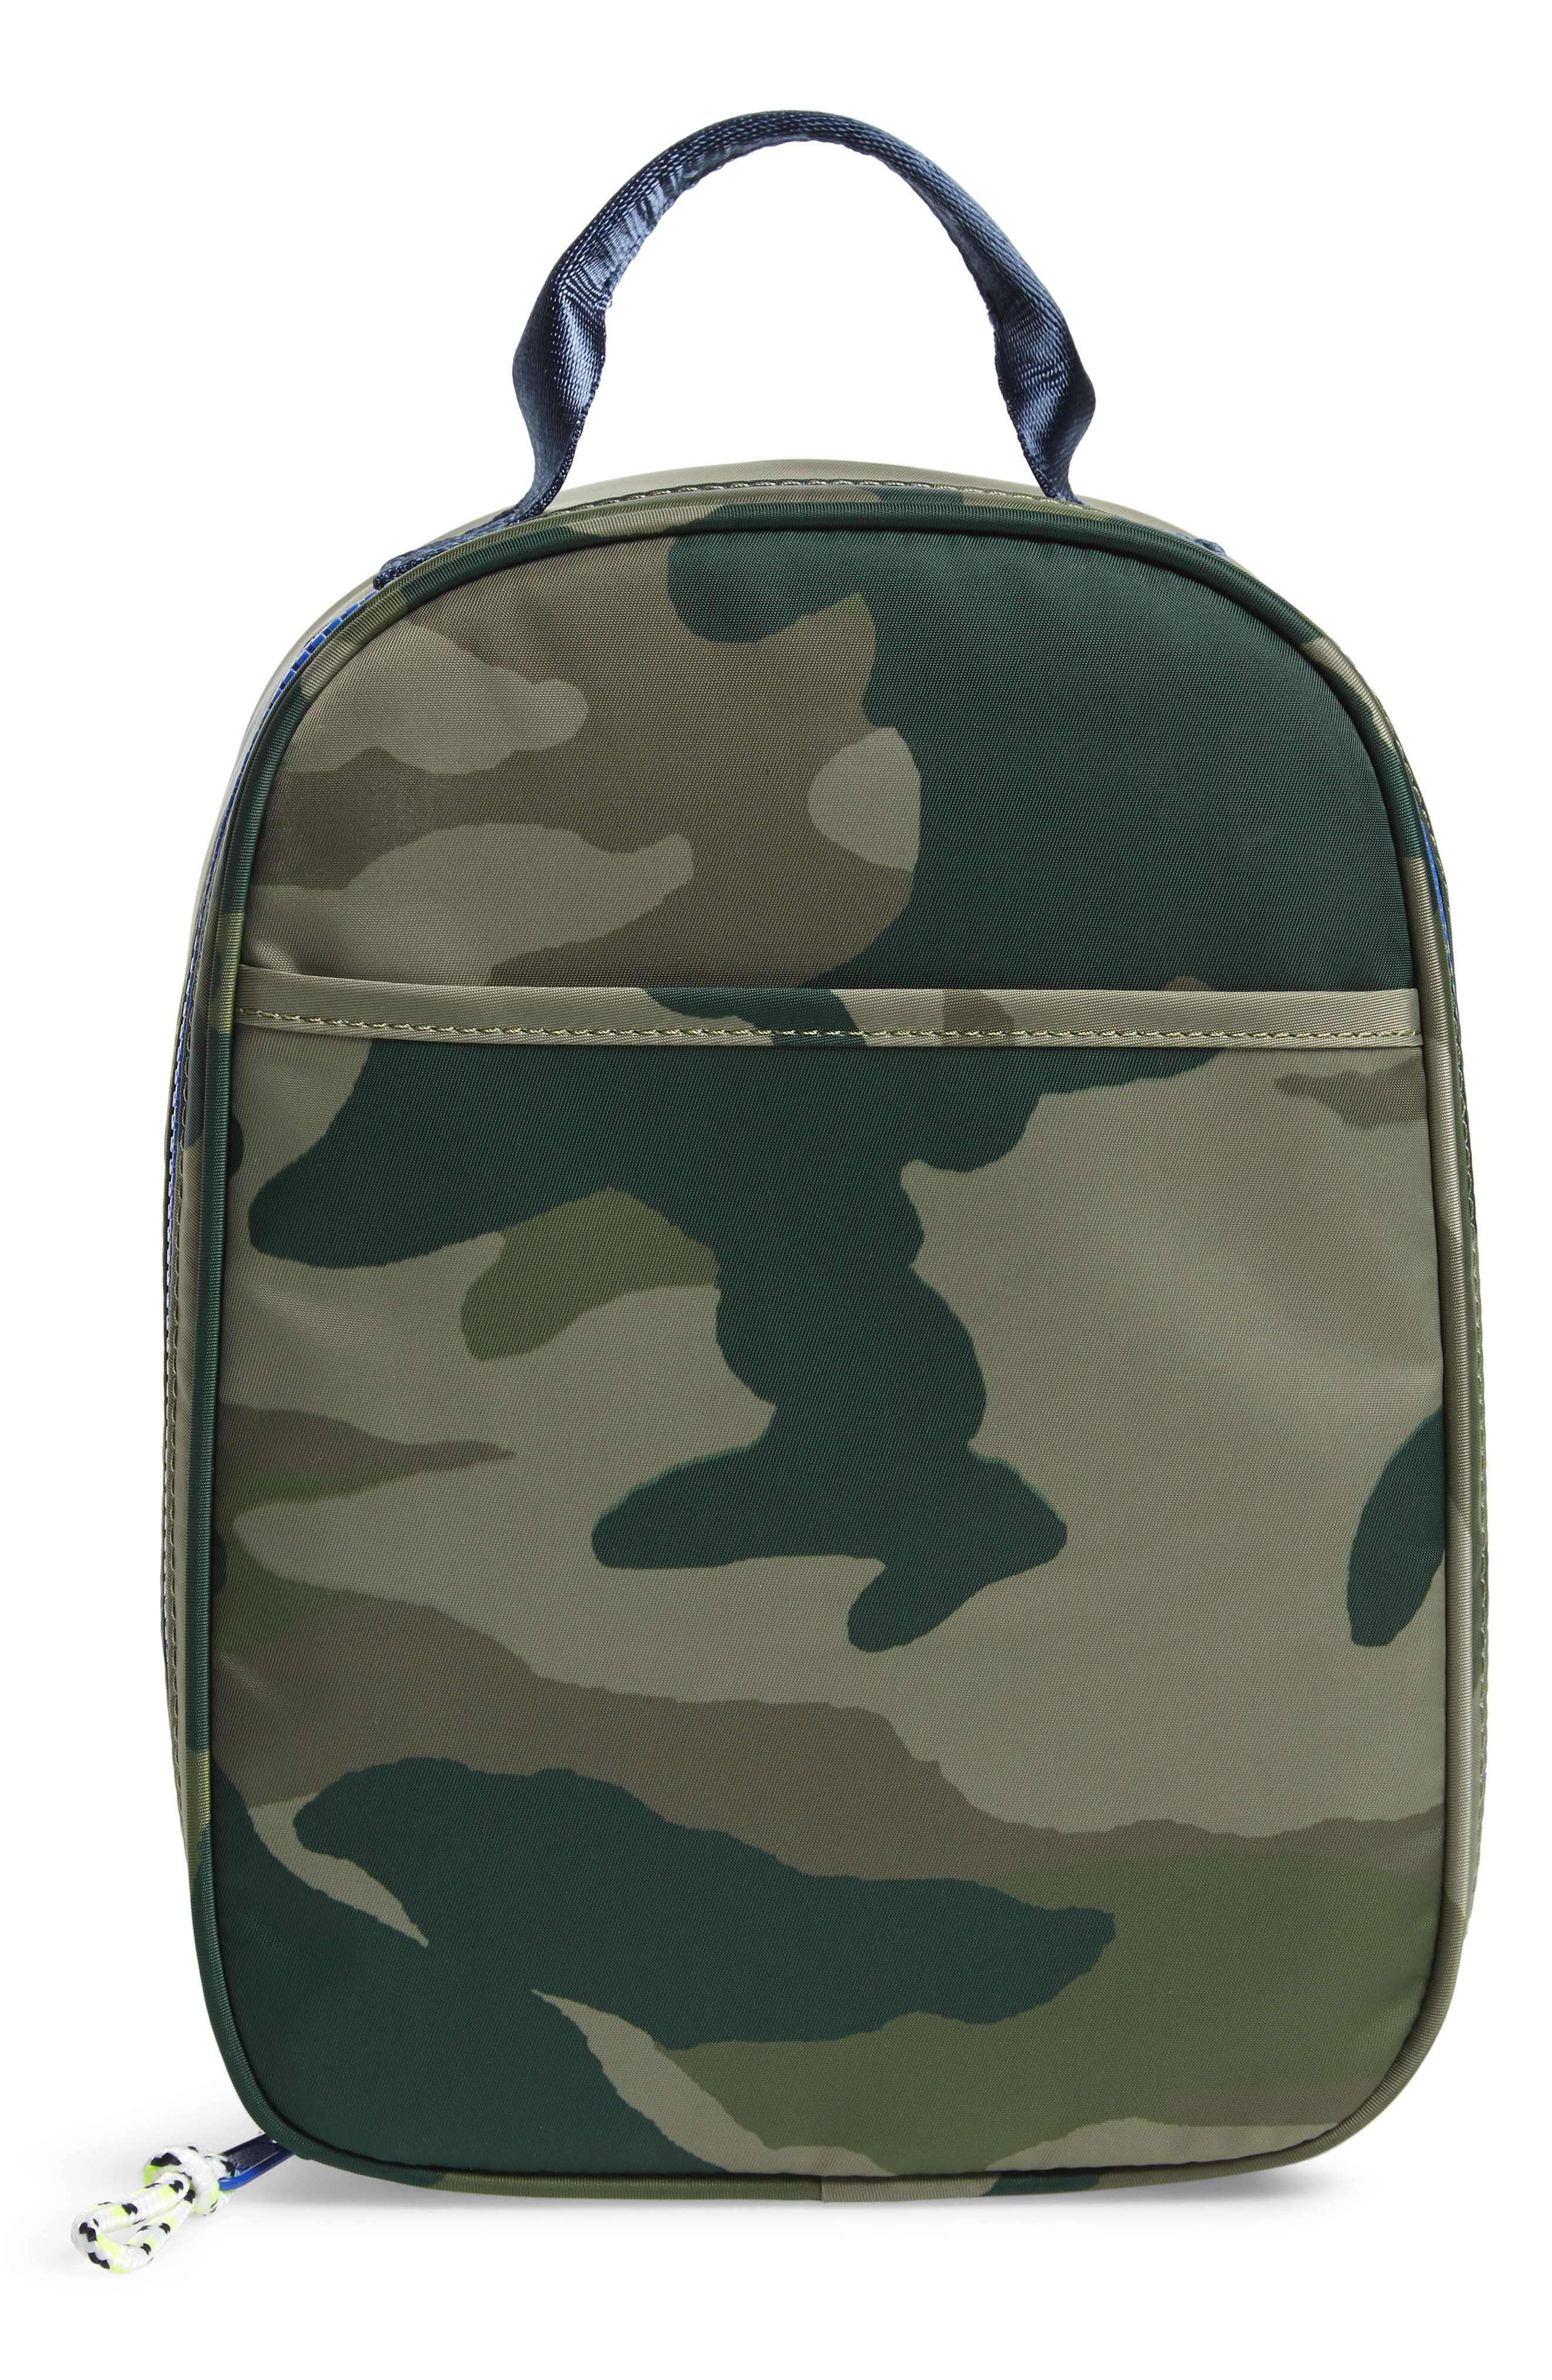 Camo Print Lunch Box,                             Main thumbnail 1, color,                             300